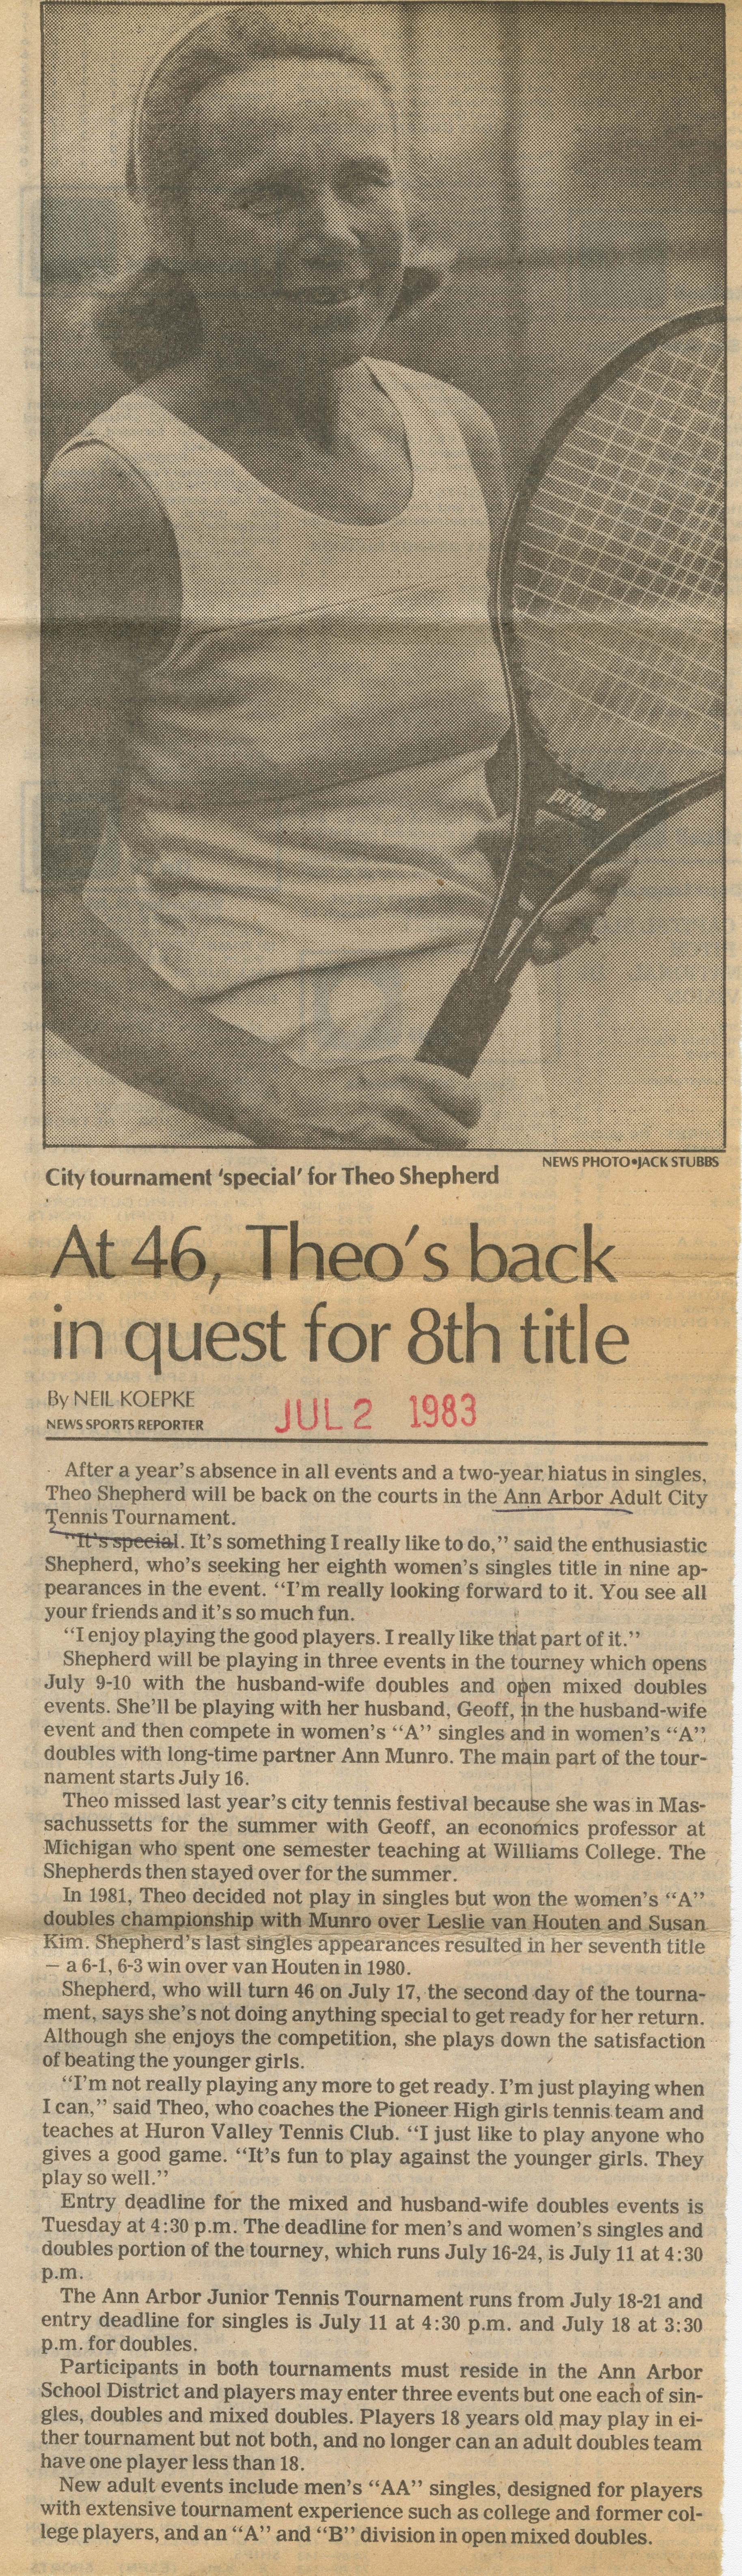 At 46, Theo's back in quest for 8th title image